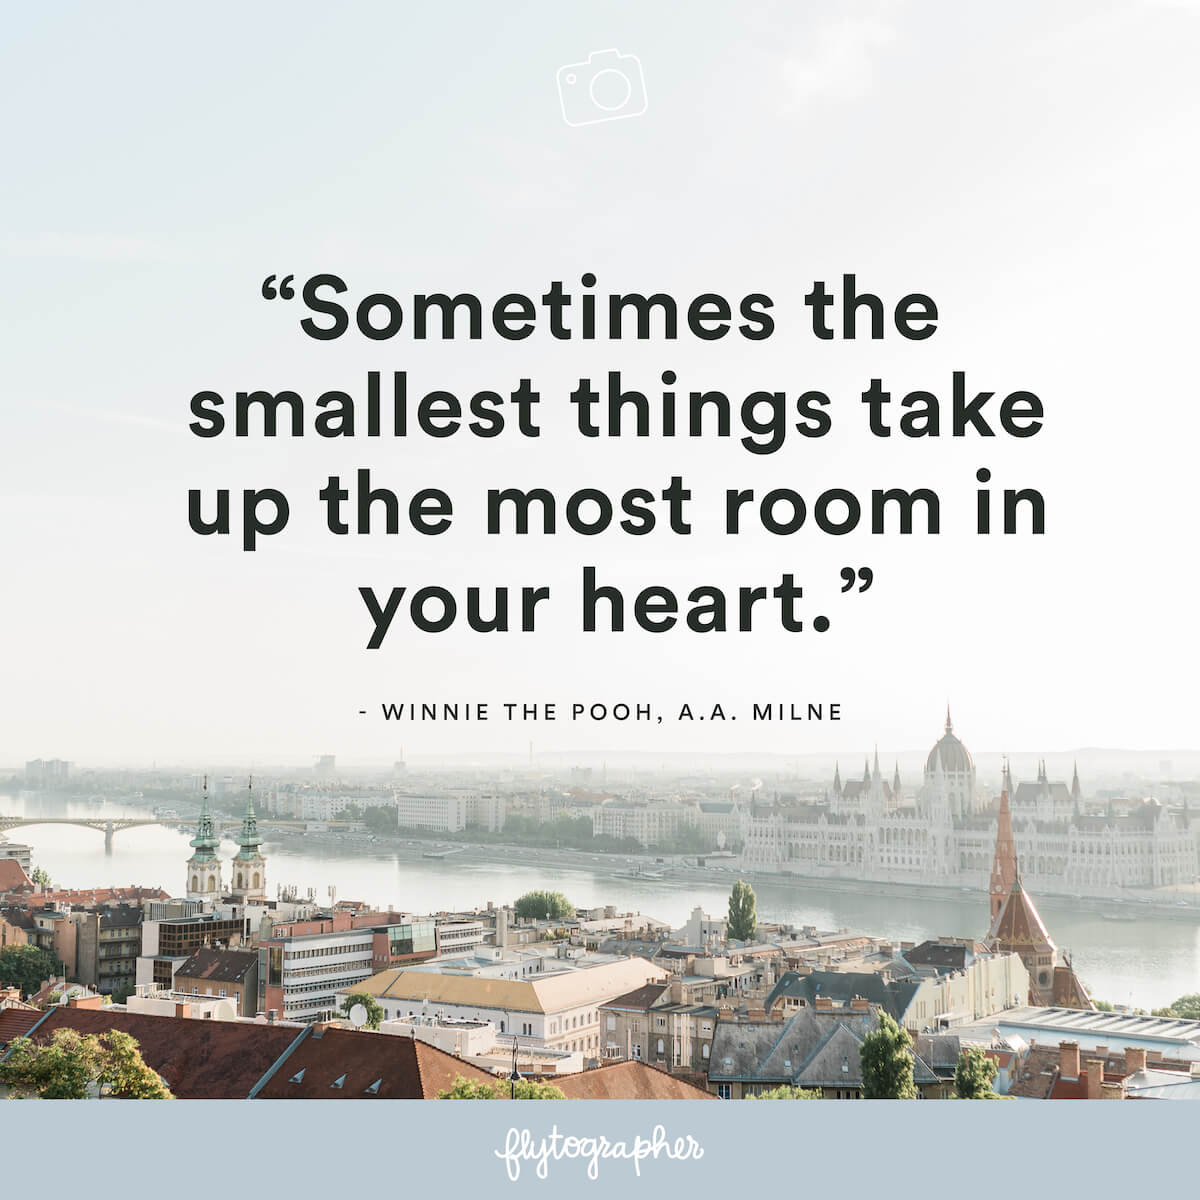 "Travel quote: ""Sometimes the smallest things take up the most room in your heart."" - A.A. Milne, Winnie the Pooh"